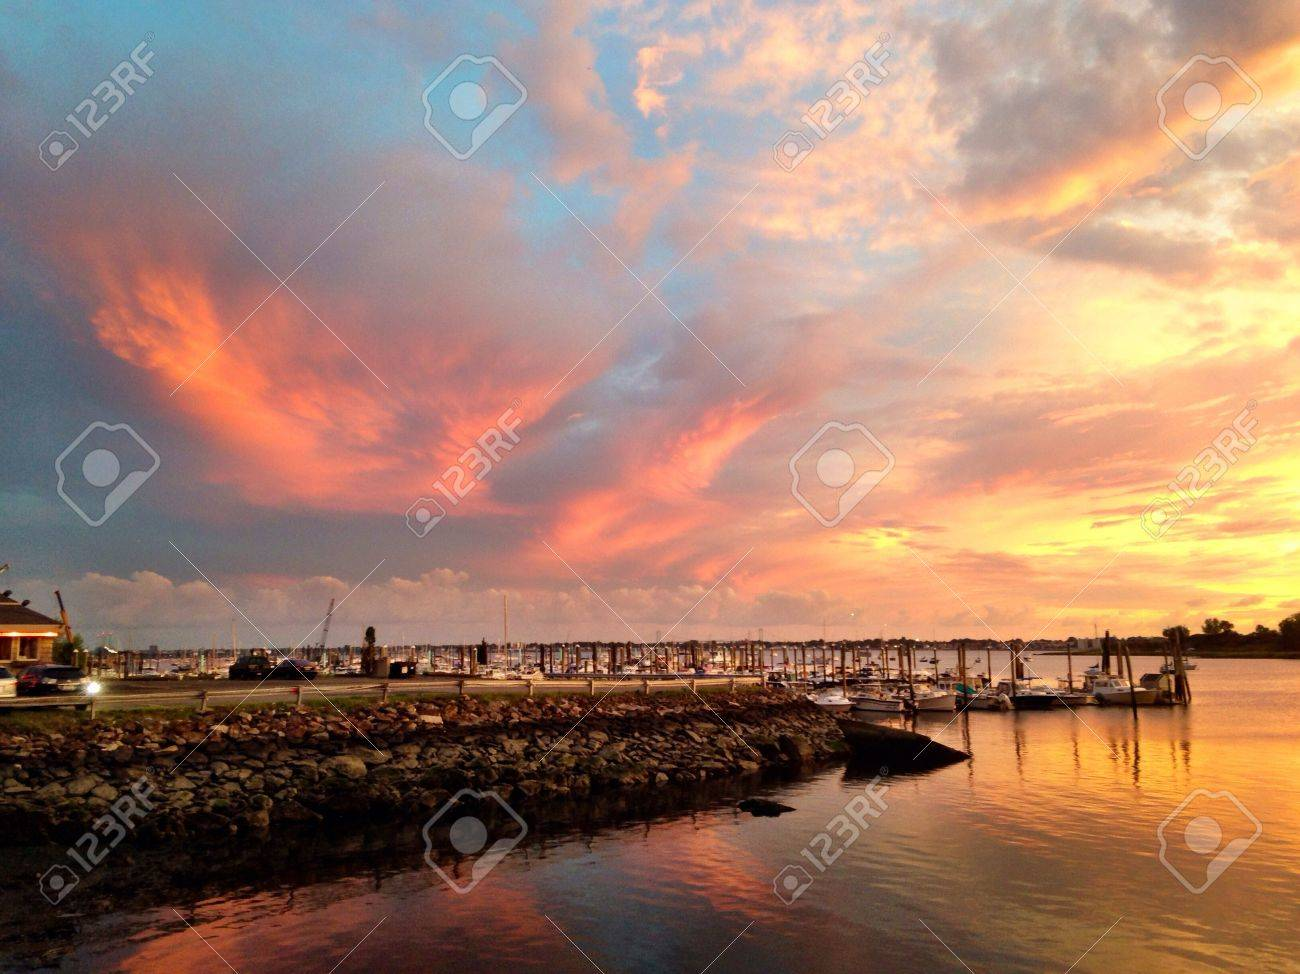 Sunset at City Island in The Bronx Stock Photo - 31383715